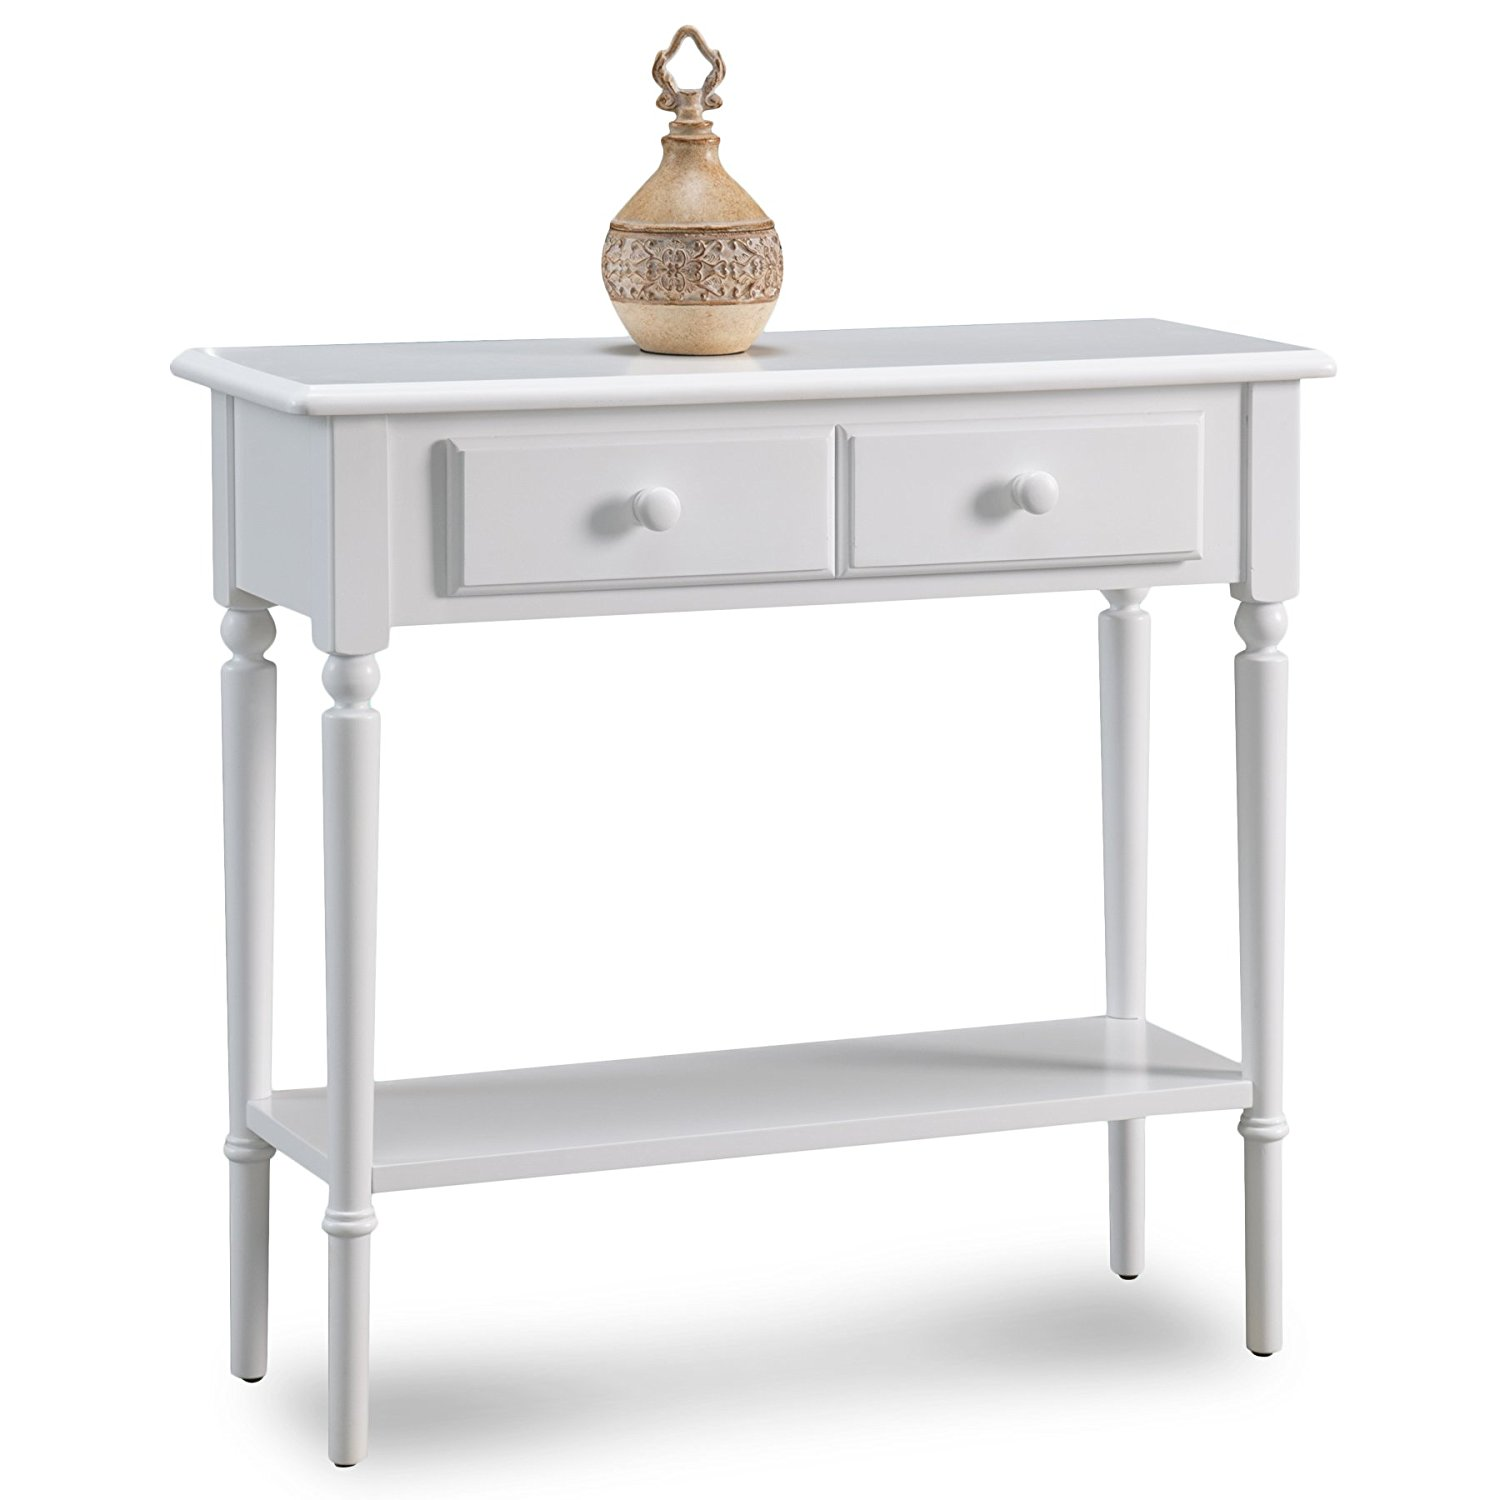 Leick 20027-WT Coastal Narrow Hall Stand/Sofa Table with Shelf, Orchid White